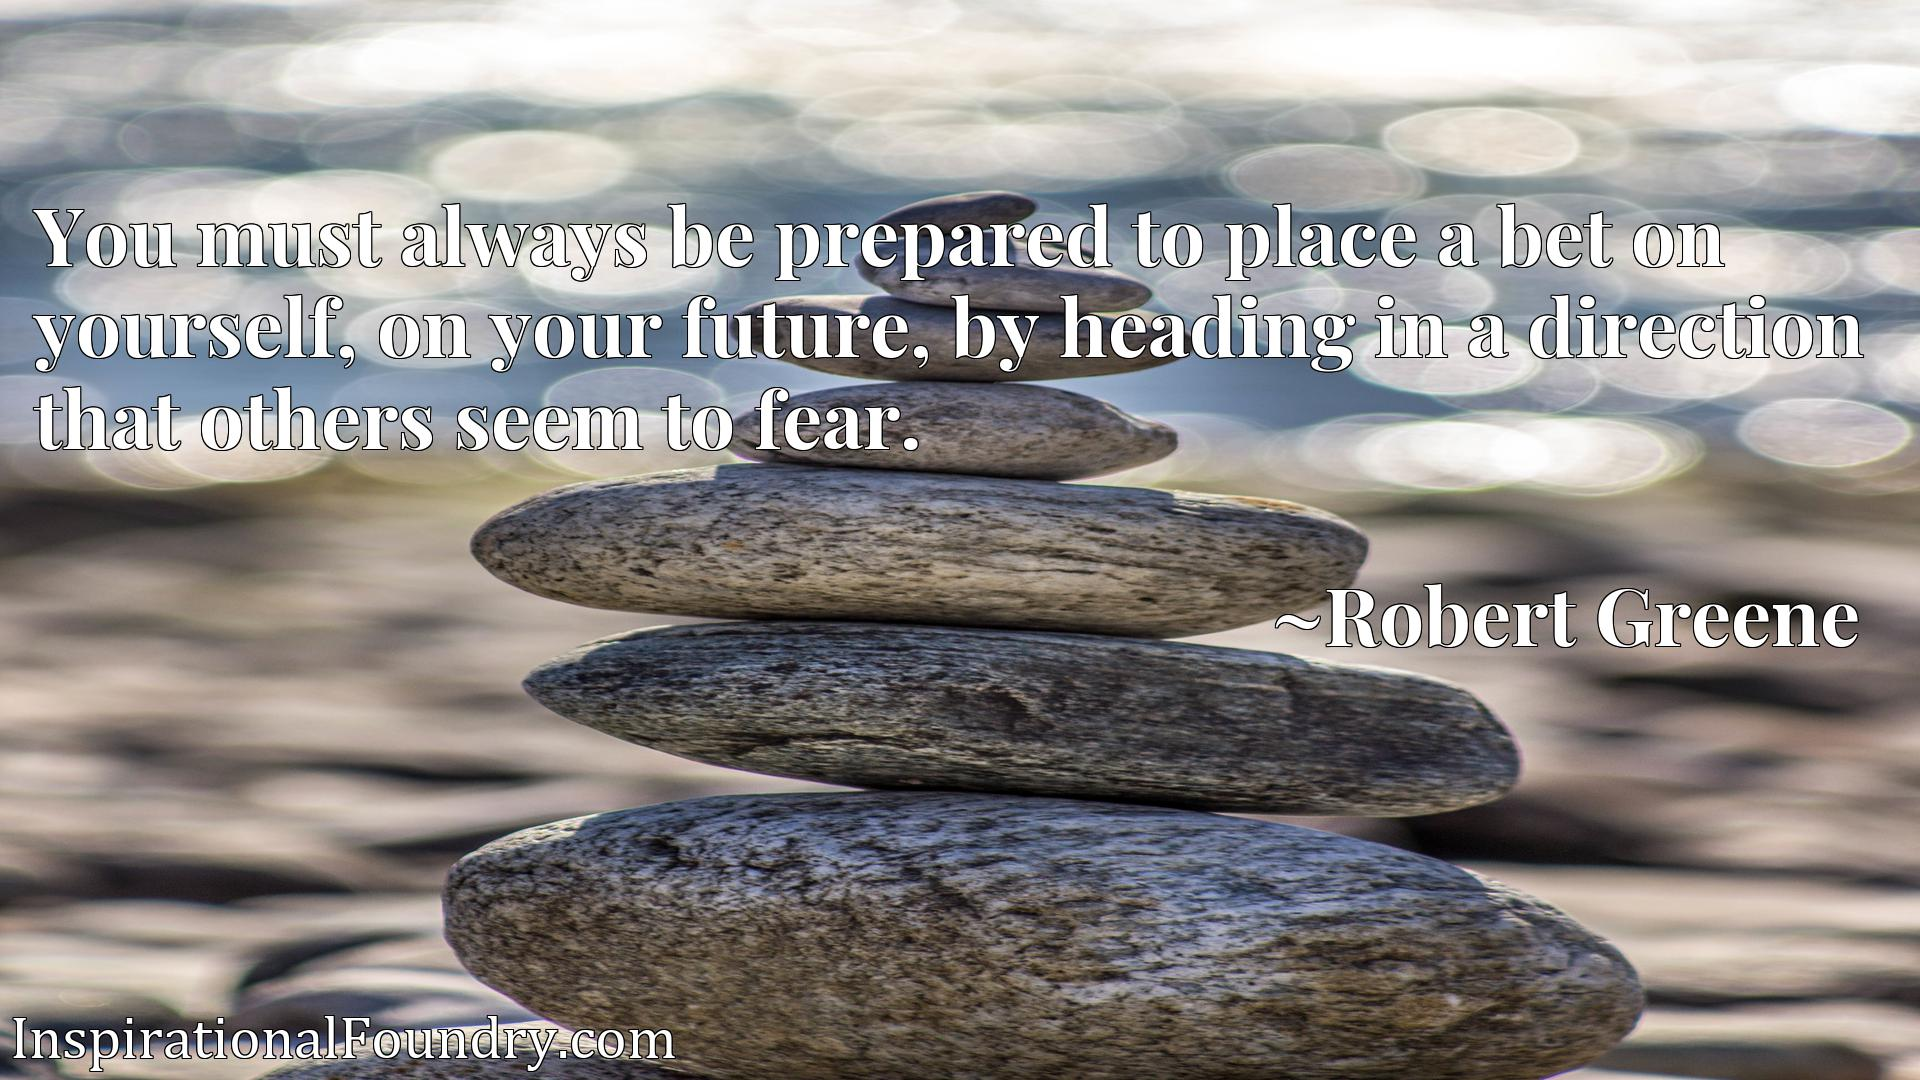 You must always be prepared to place a bet on yourself, on your future, by heading in a direction that others seem to fear.